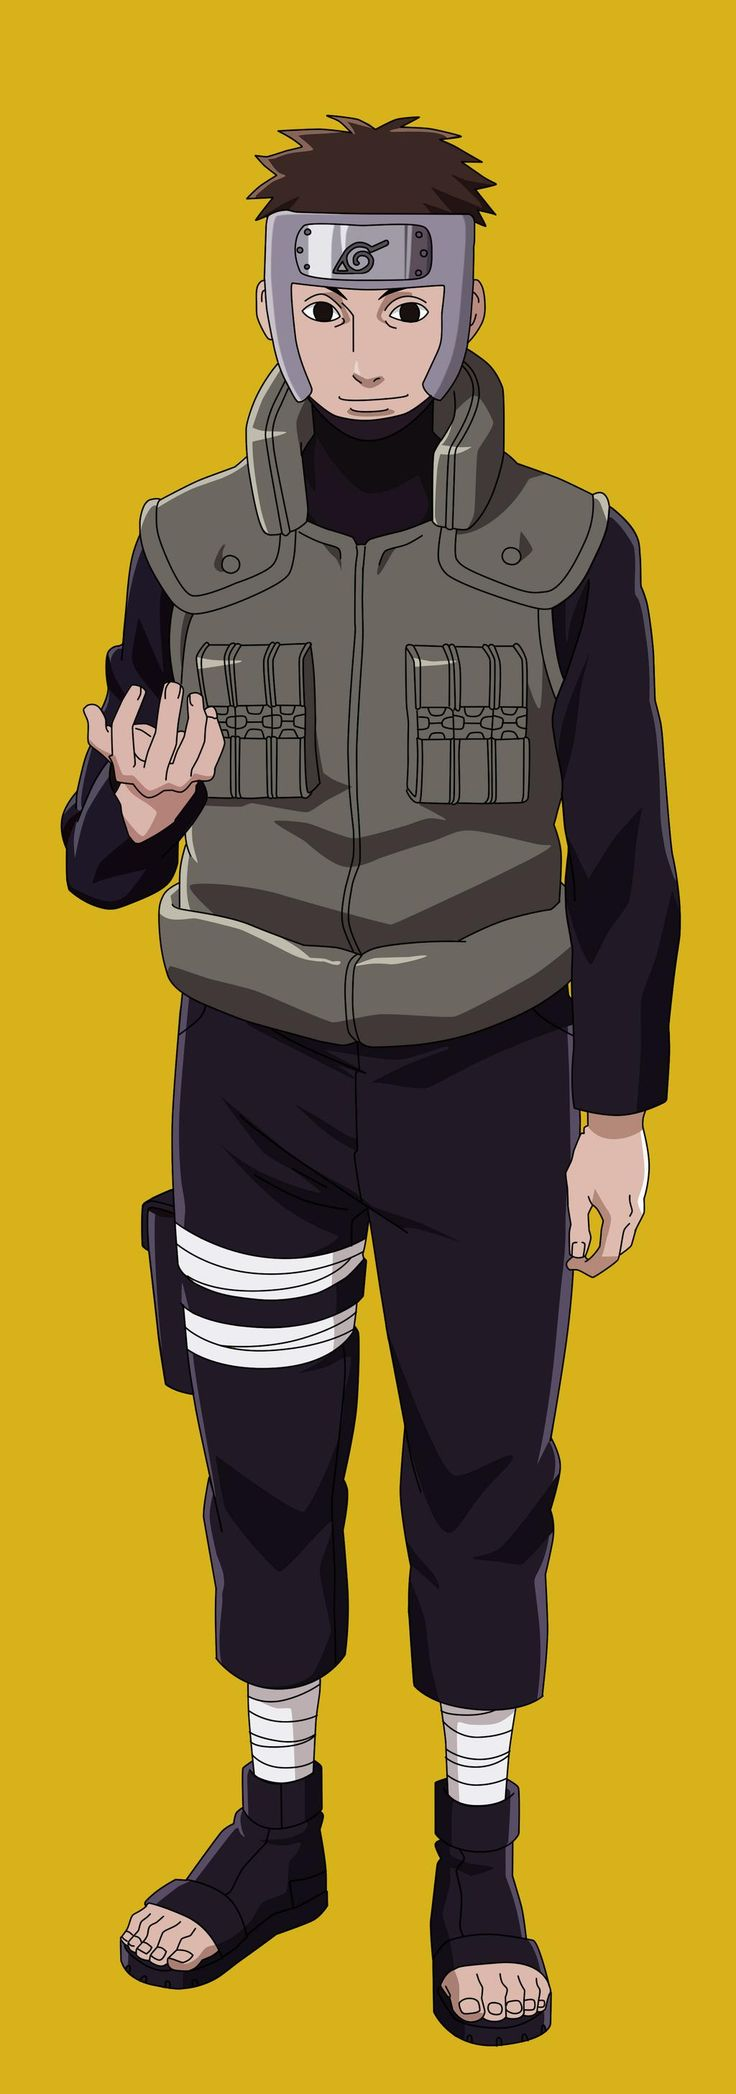 Yamato Vector by TGNx on DeviantArt in 2020 Anime naruto